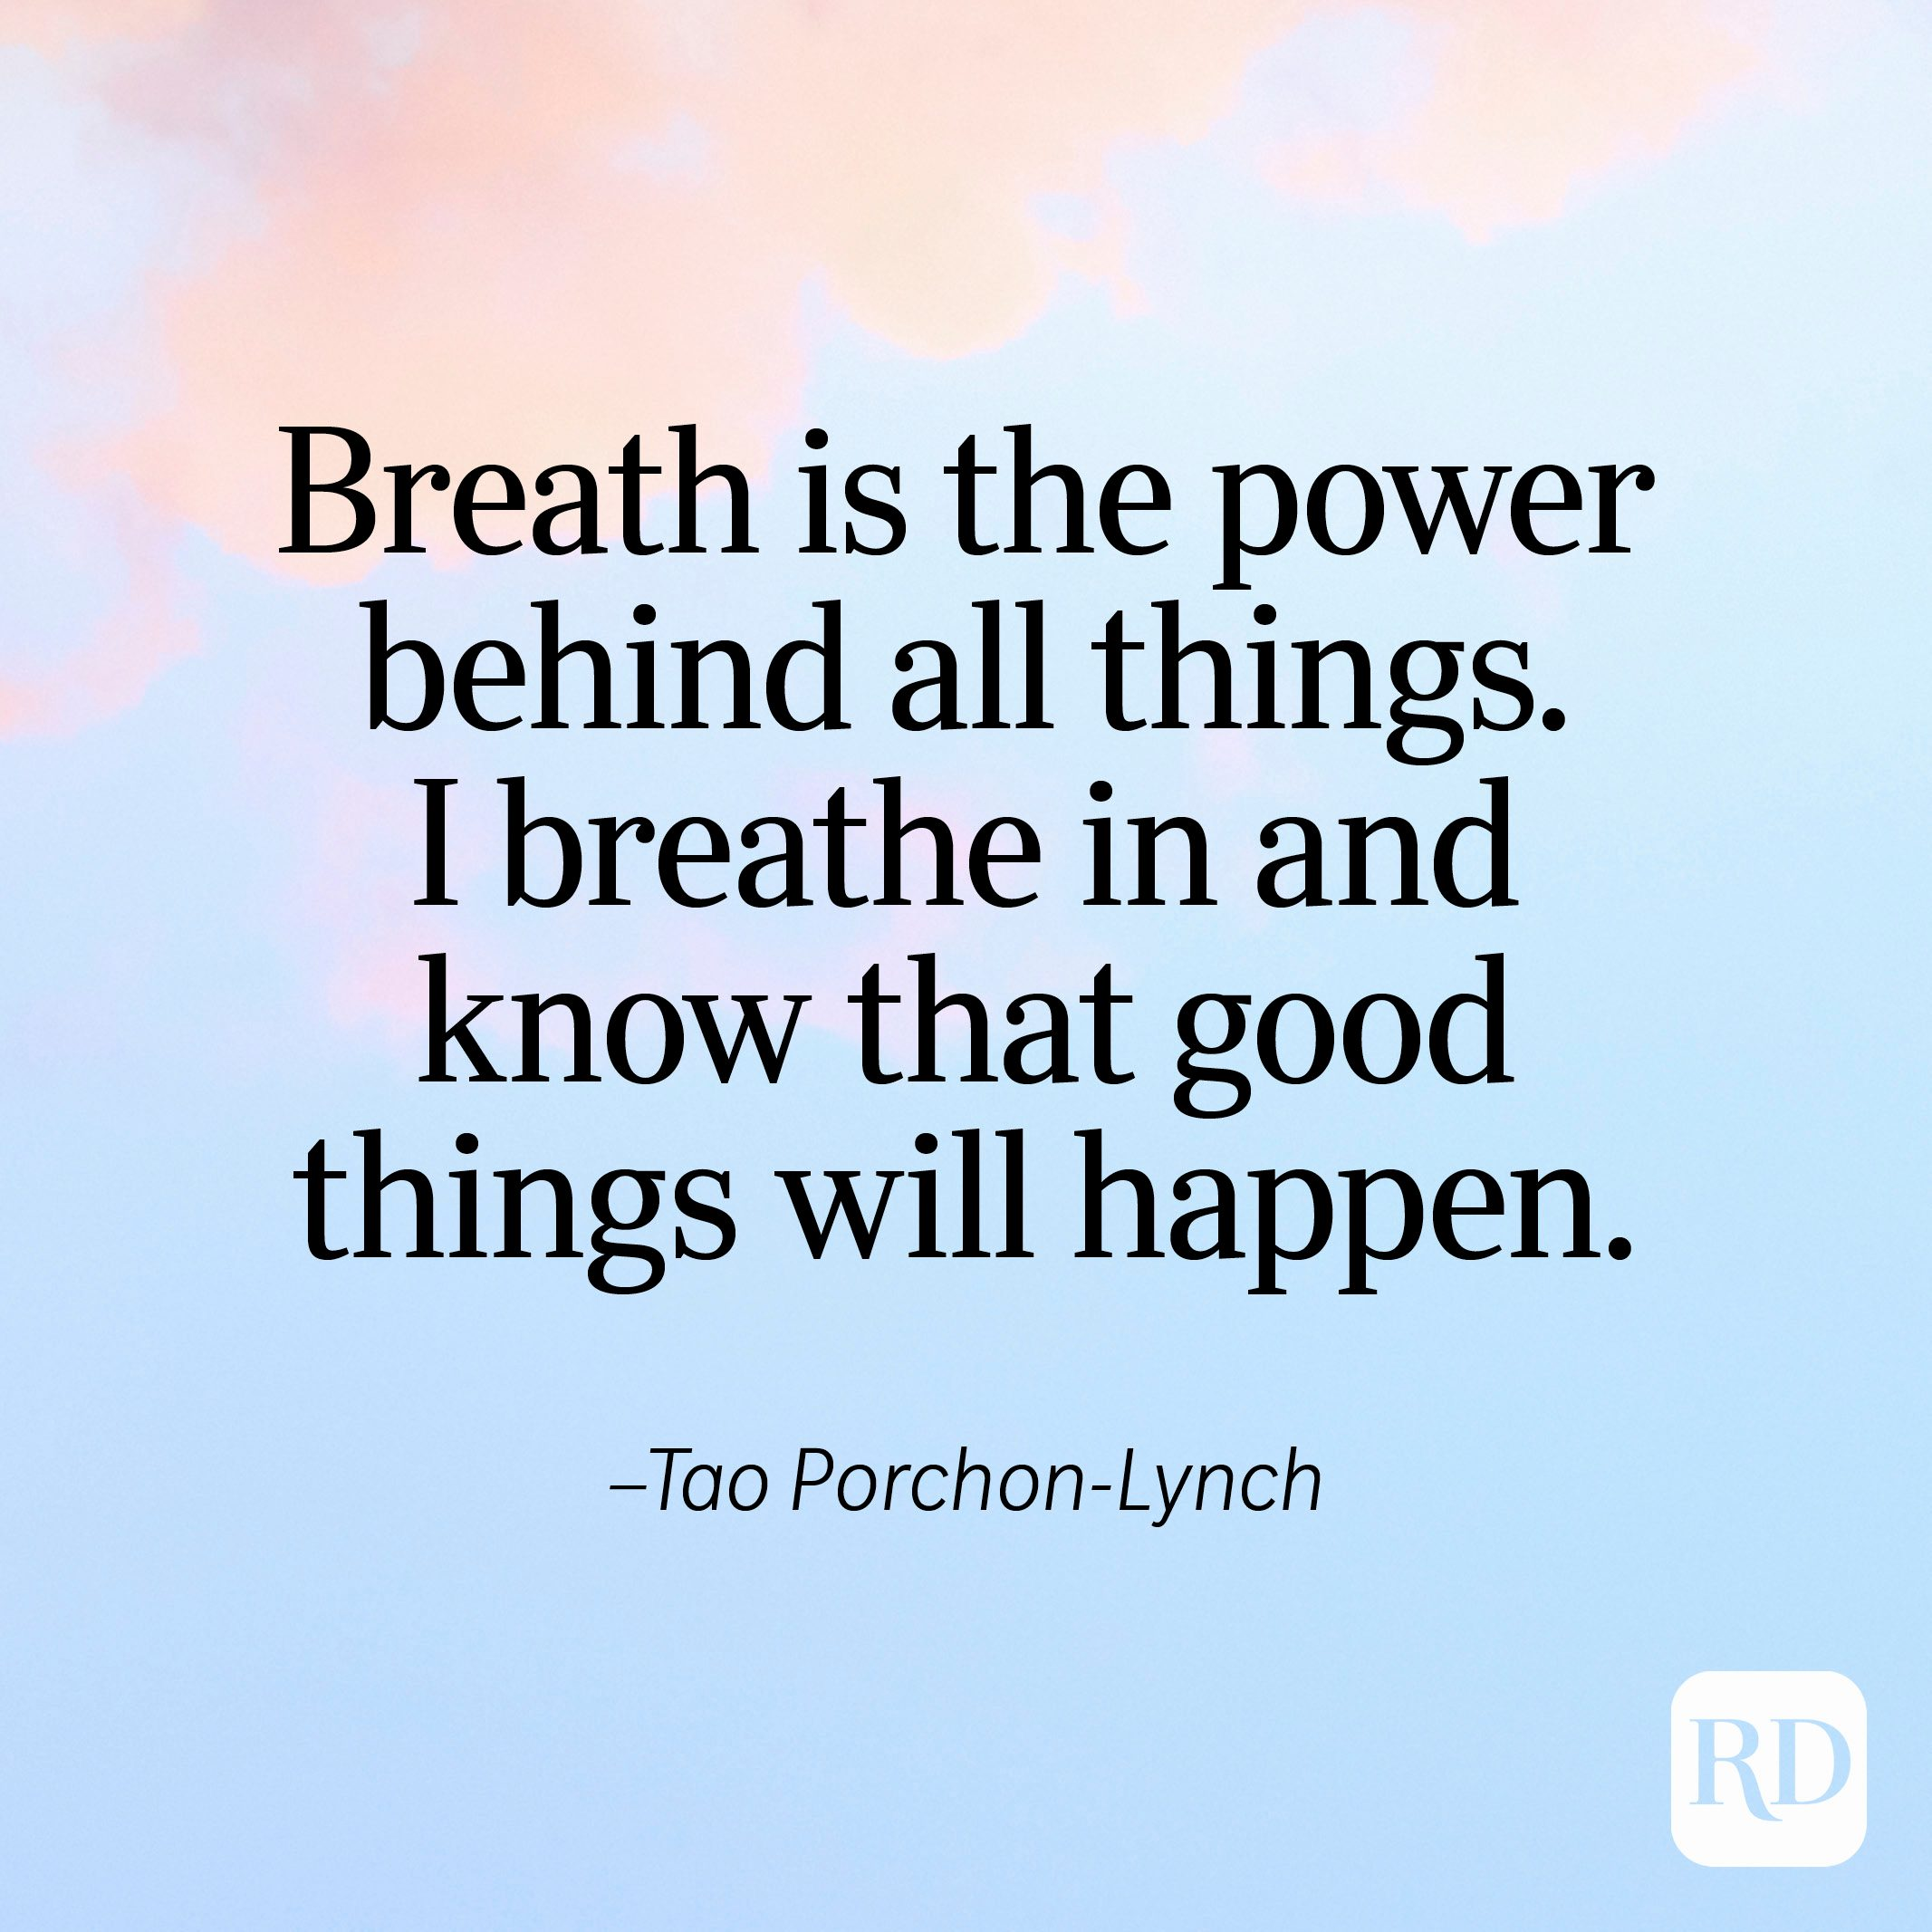 """""""Breath is the power behind all things. I breathe in and know that good things will happen."""" —Tao Porchon-Lynch"""